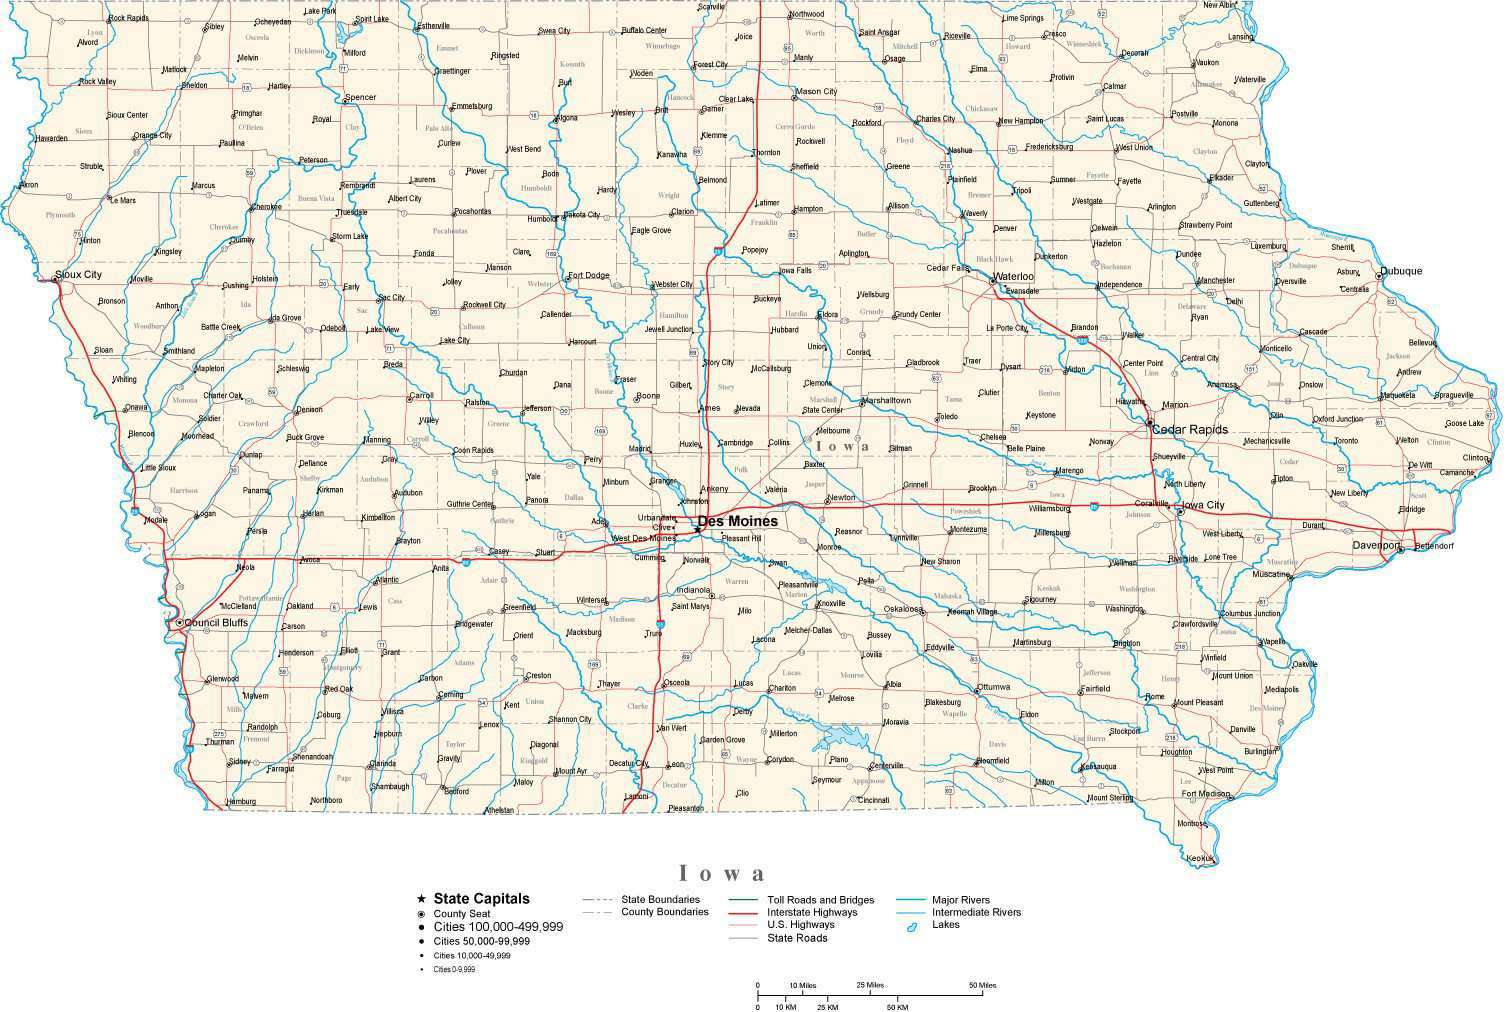 Iowa State Map In Fit Together Style To Match Other States Map